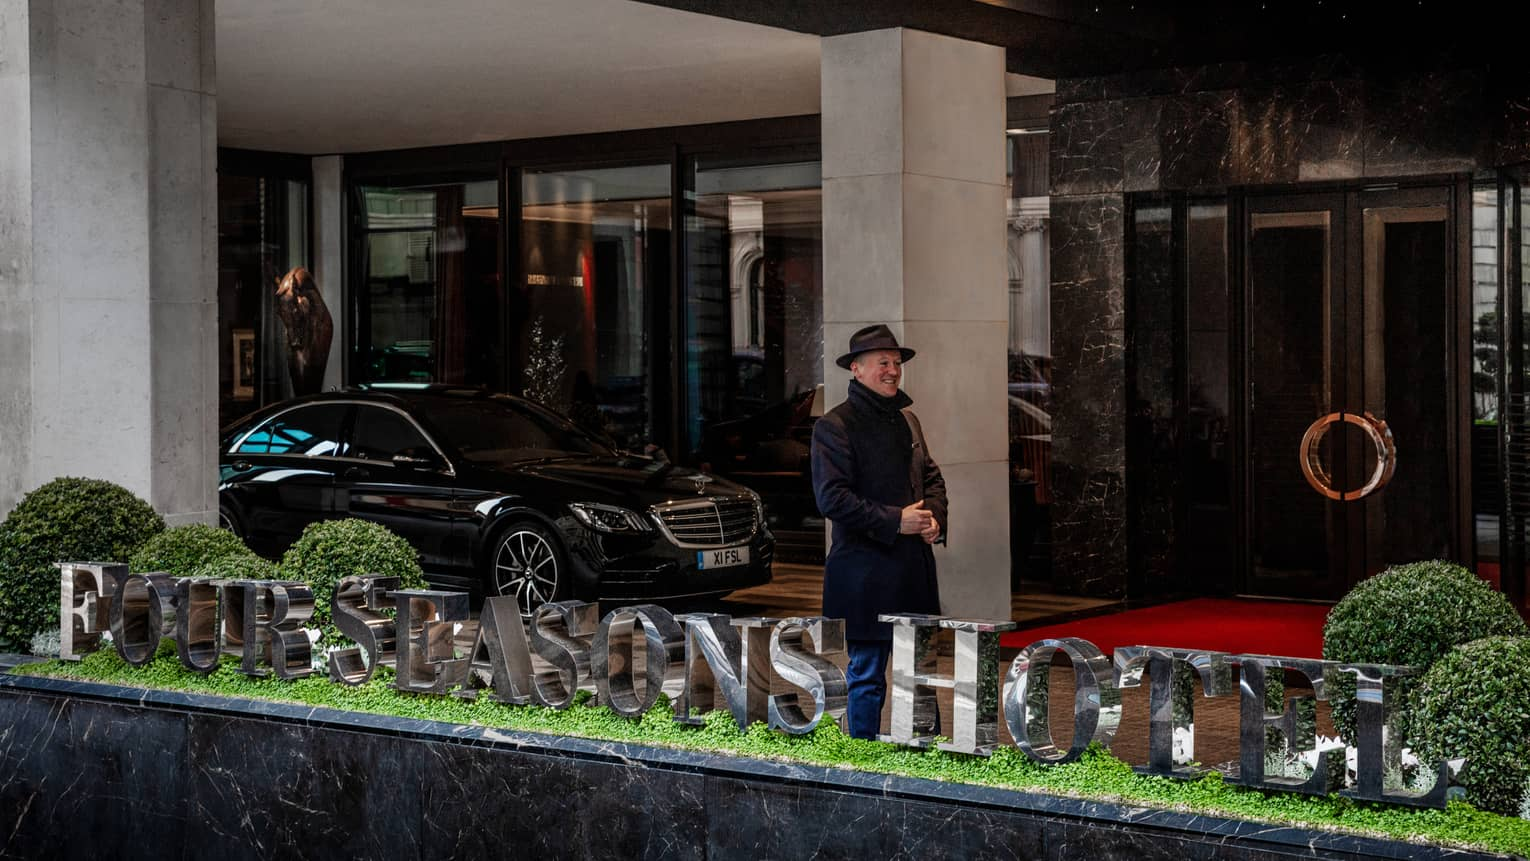 Man in dark winter coat and fedora, standing and smiling at hotel exterior under breezeway near black sedan and behind hotel sign